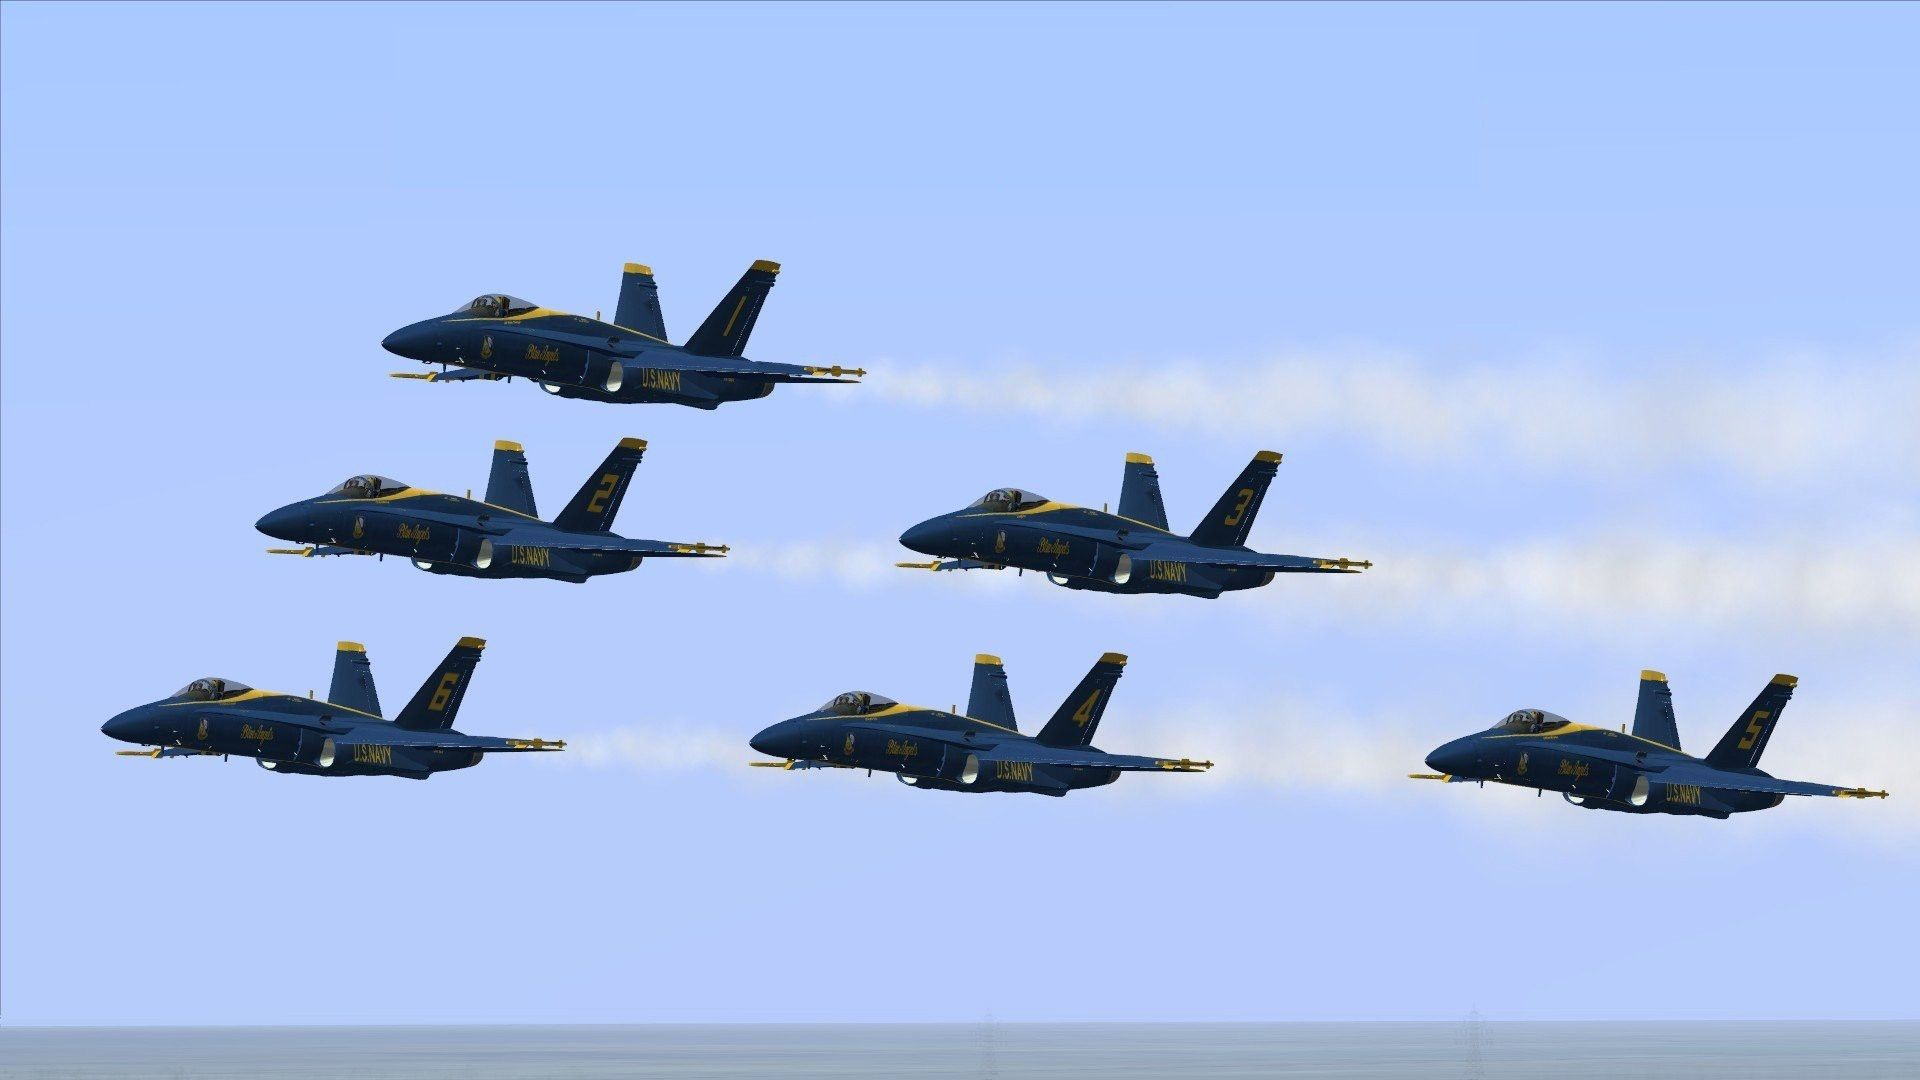 Download Wallpapers, Download 1920x1080 airplanes us navy ...